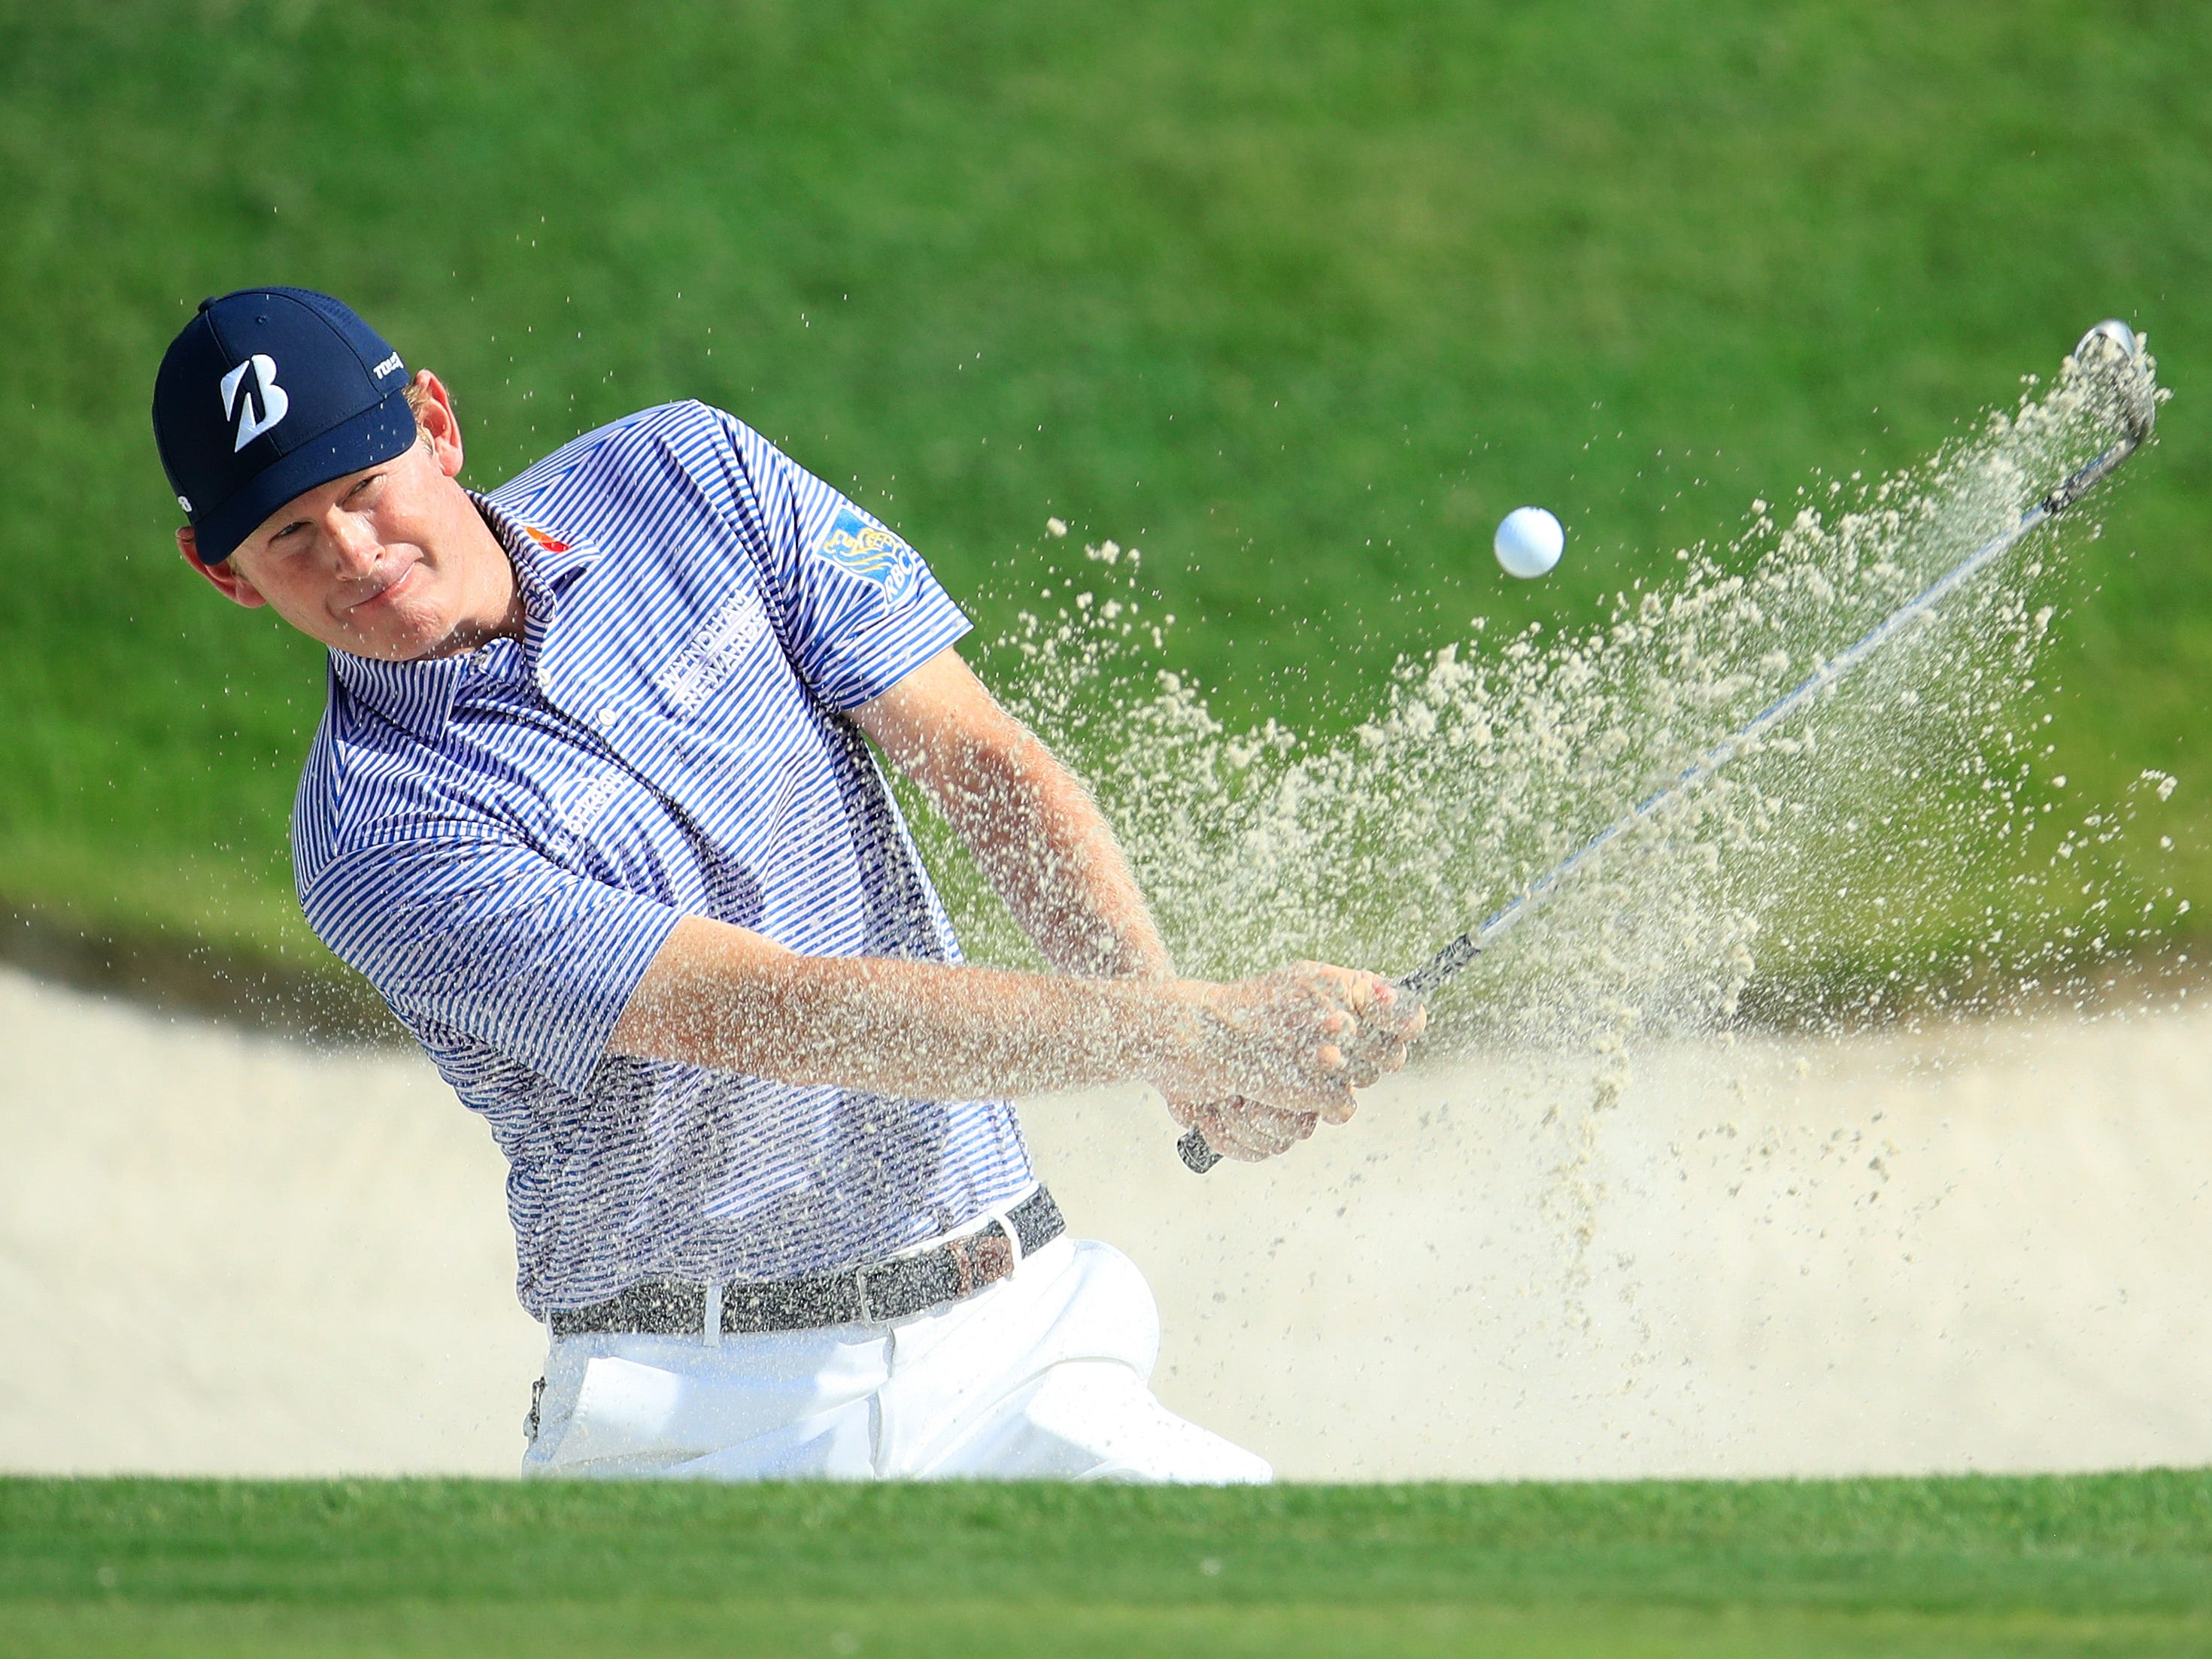 Brandt Snedeker plays a shot from a bunker on the fourth hole.